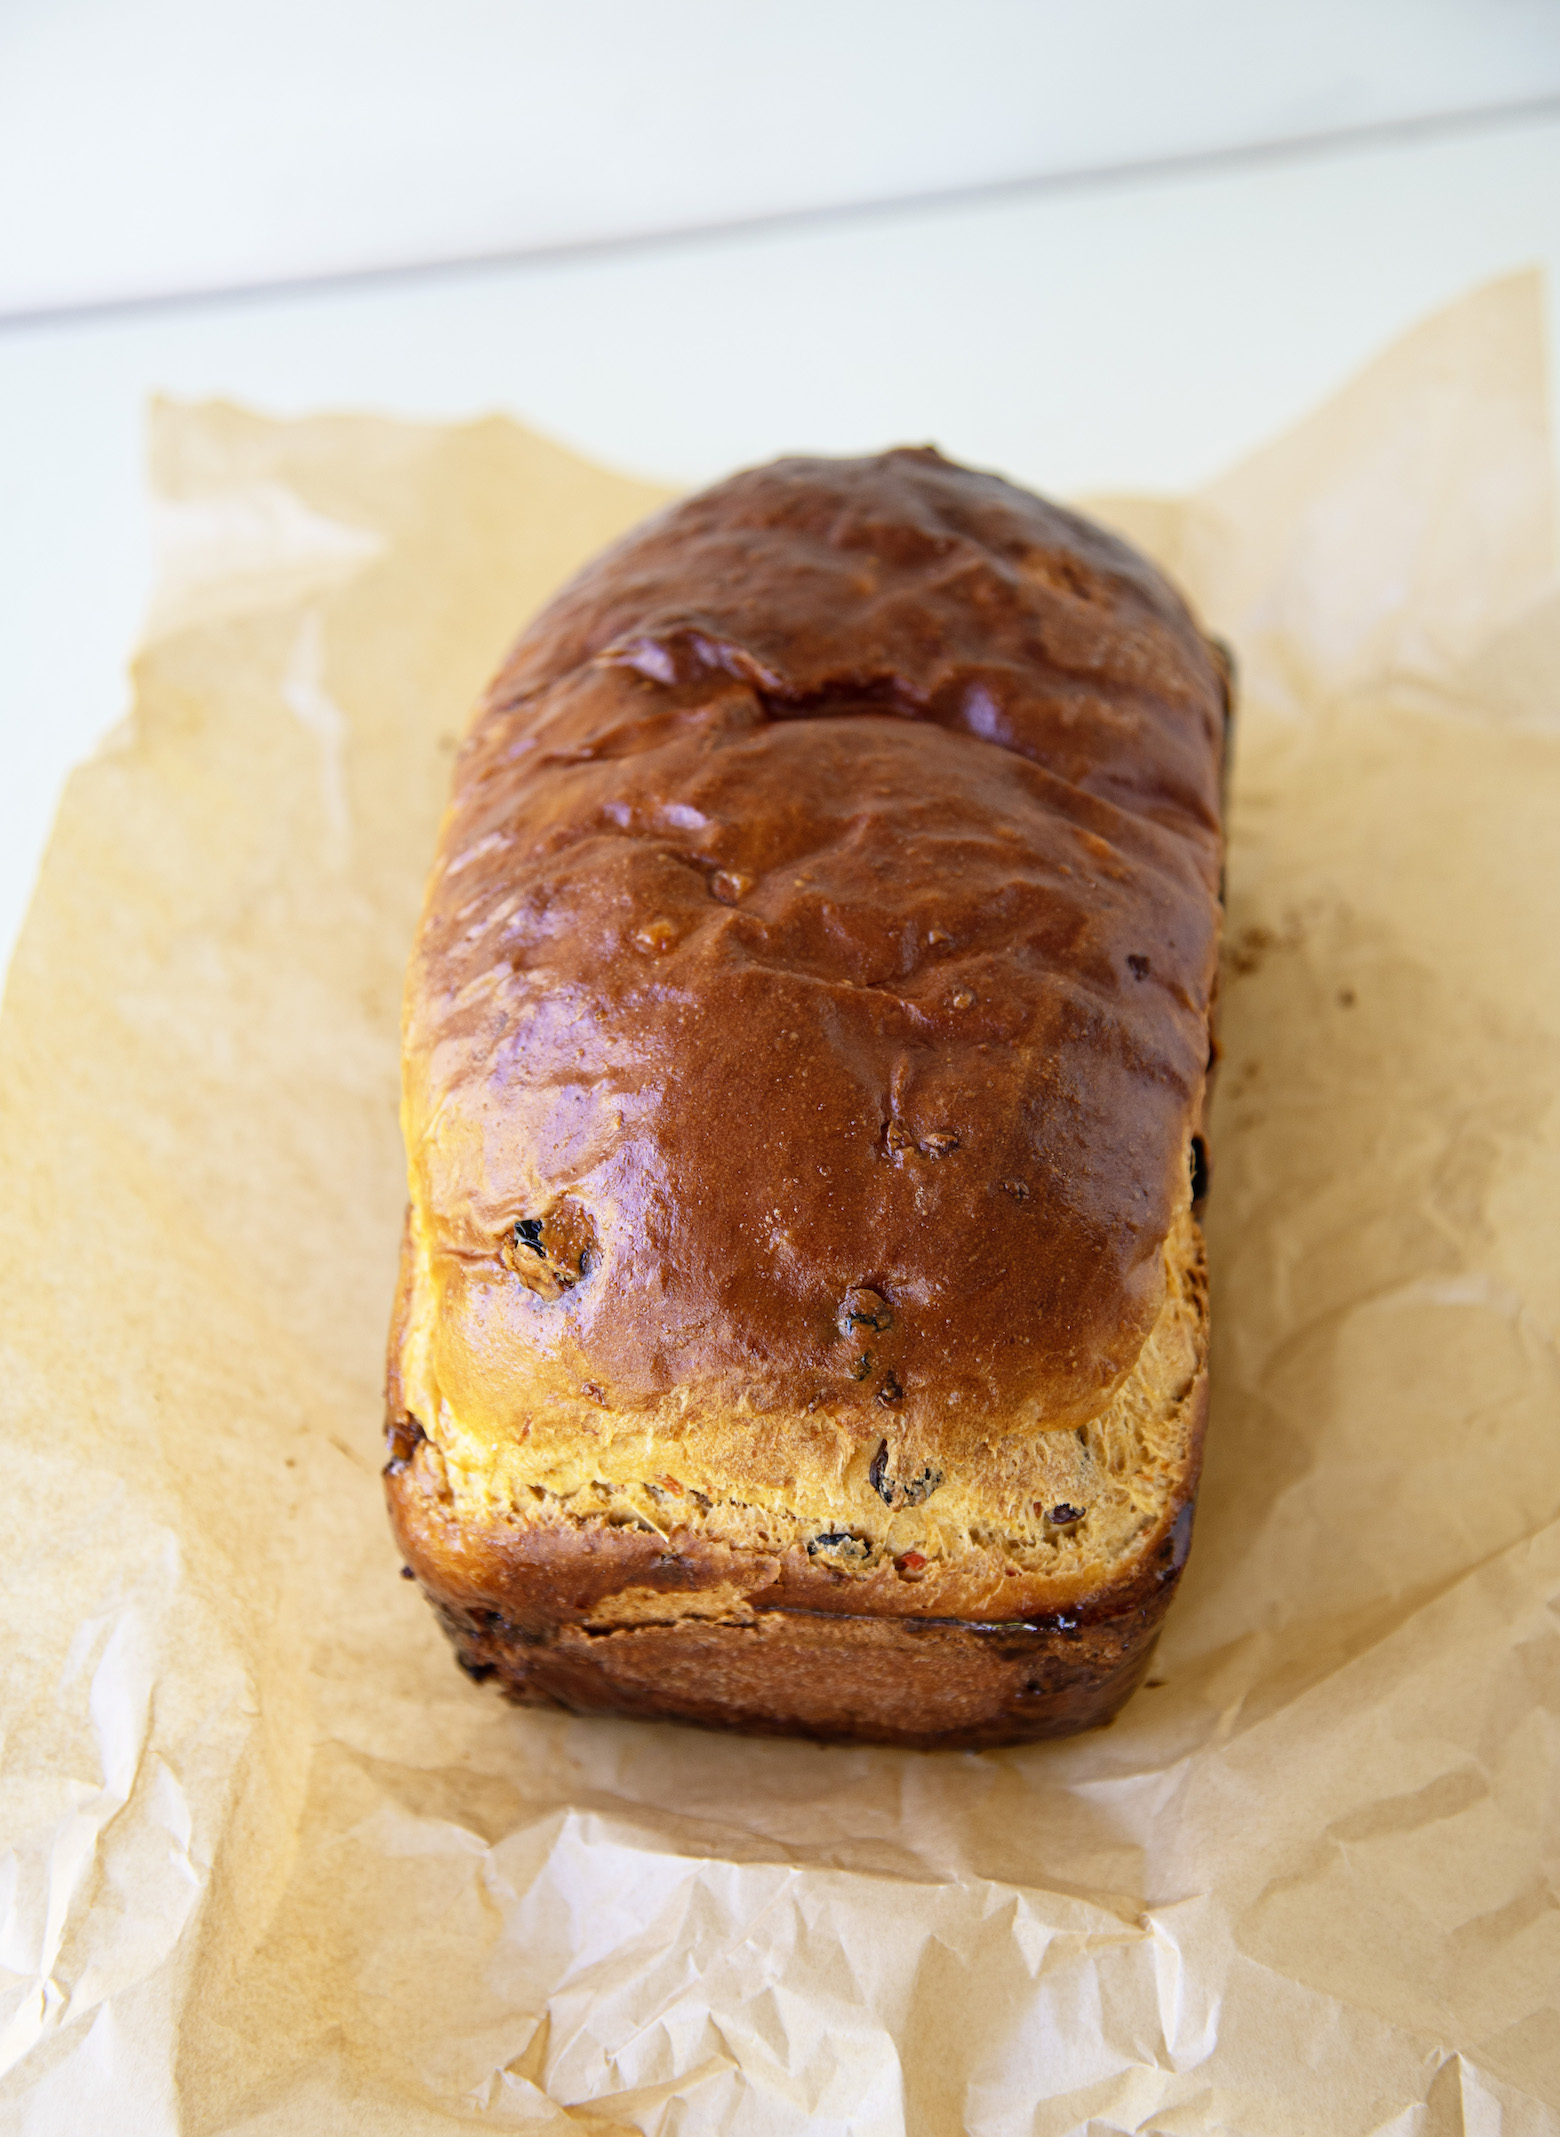 Roasted Carrot Cinnamon Raisin Yeast Bread